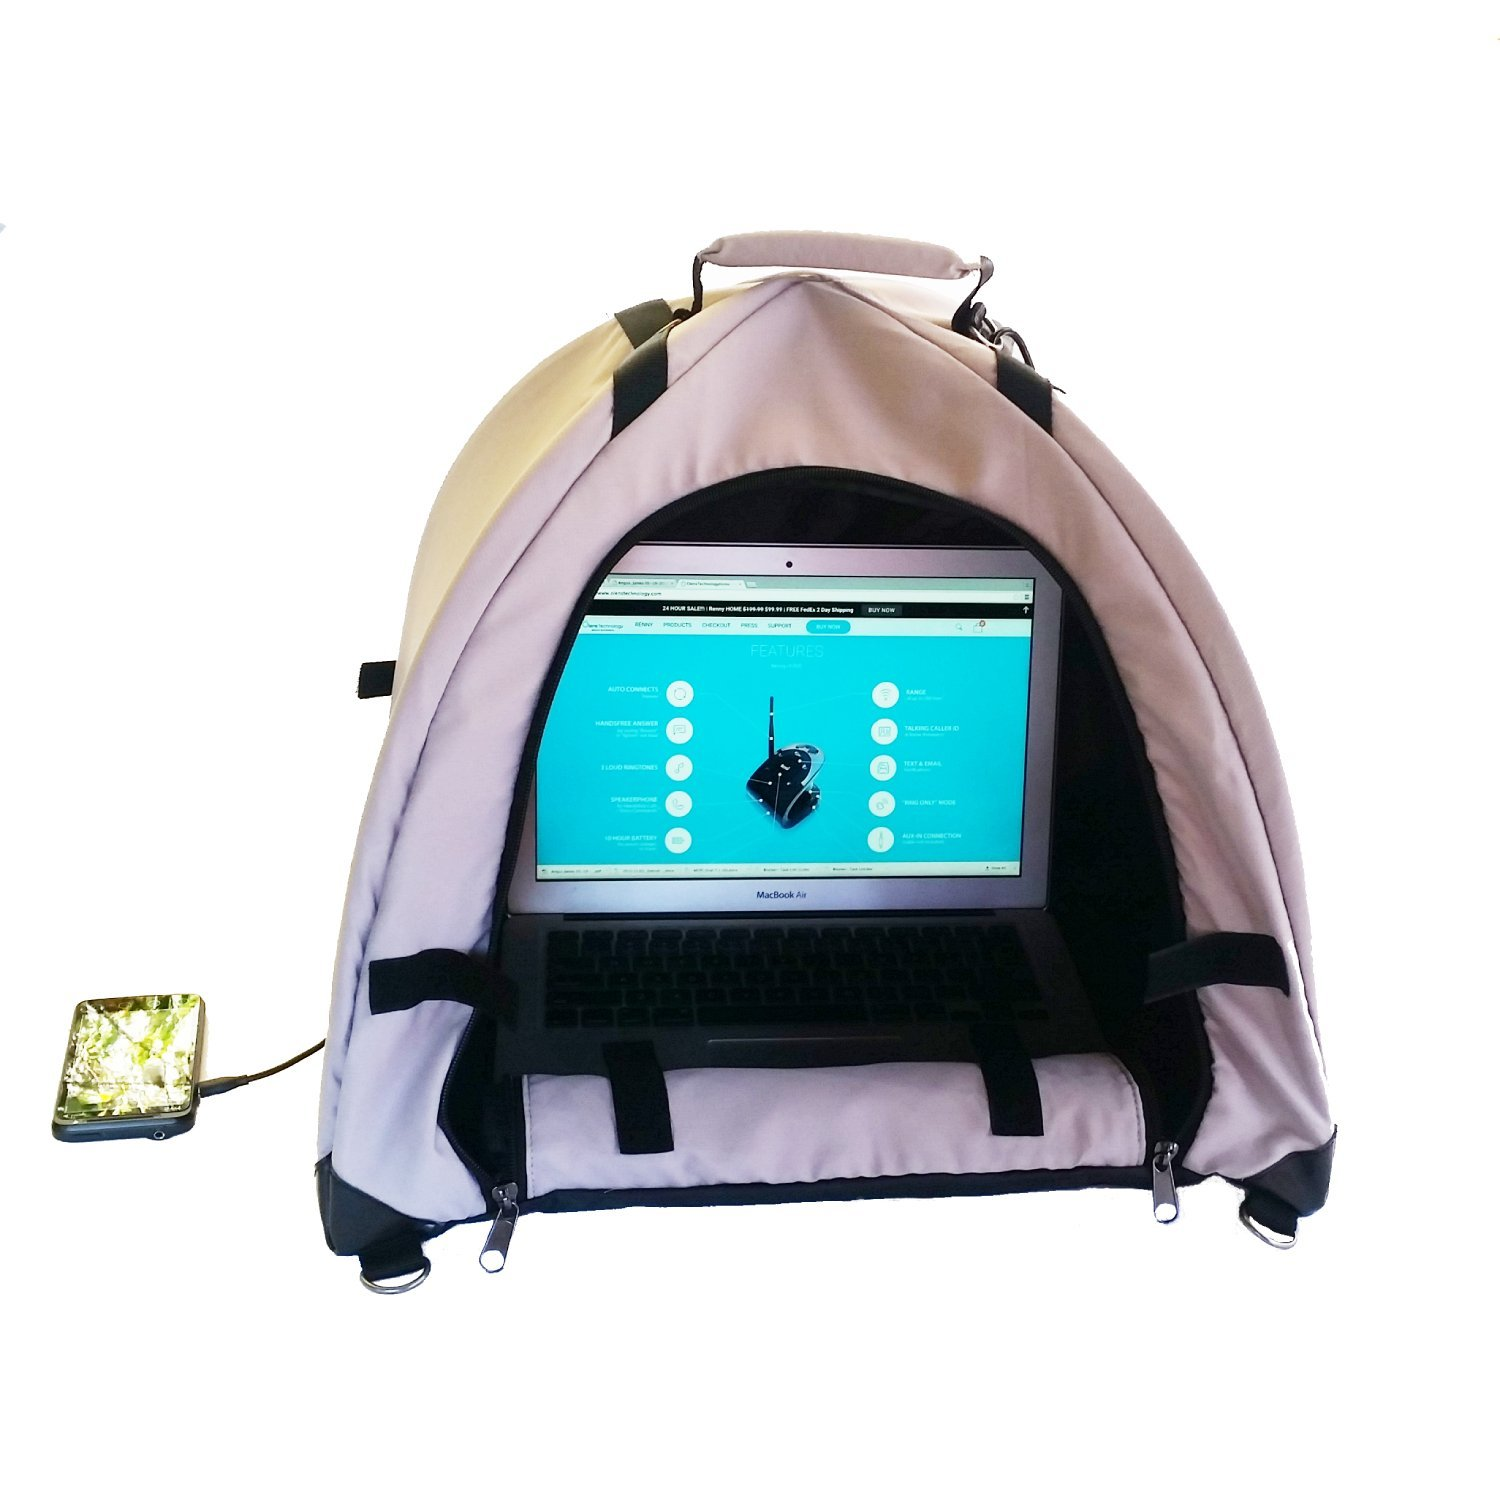 LapDome - Portable Sun Shade & Weather Protecting Carrying Case for Laptop / Tablet / Cell Phone by Olens Technology